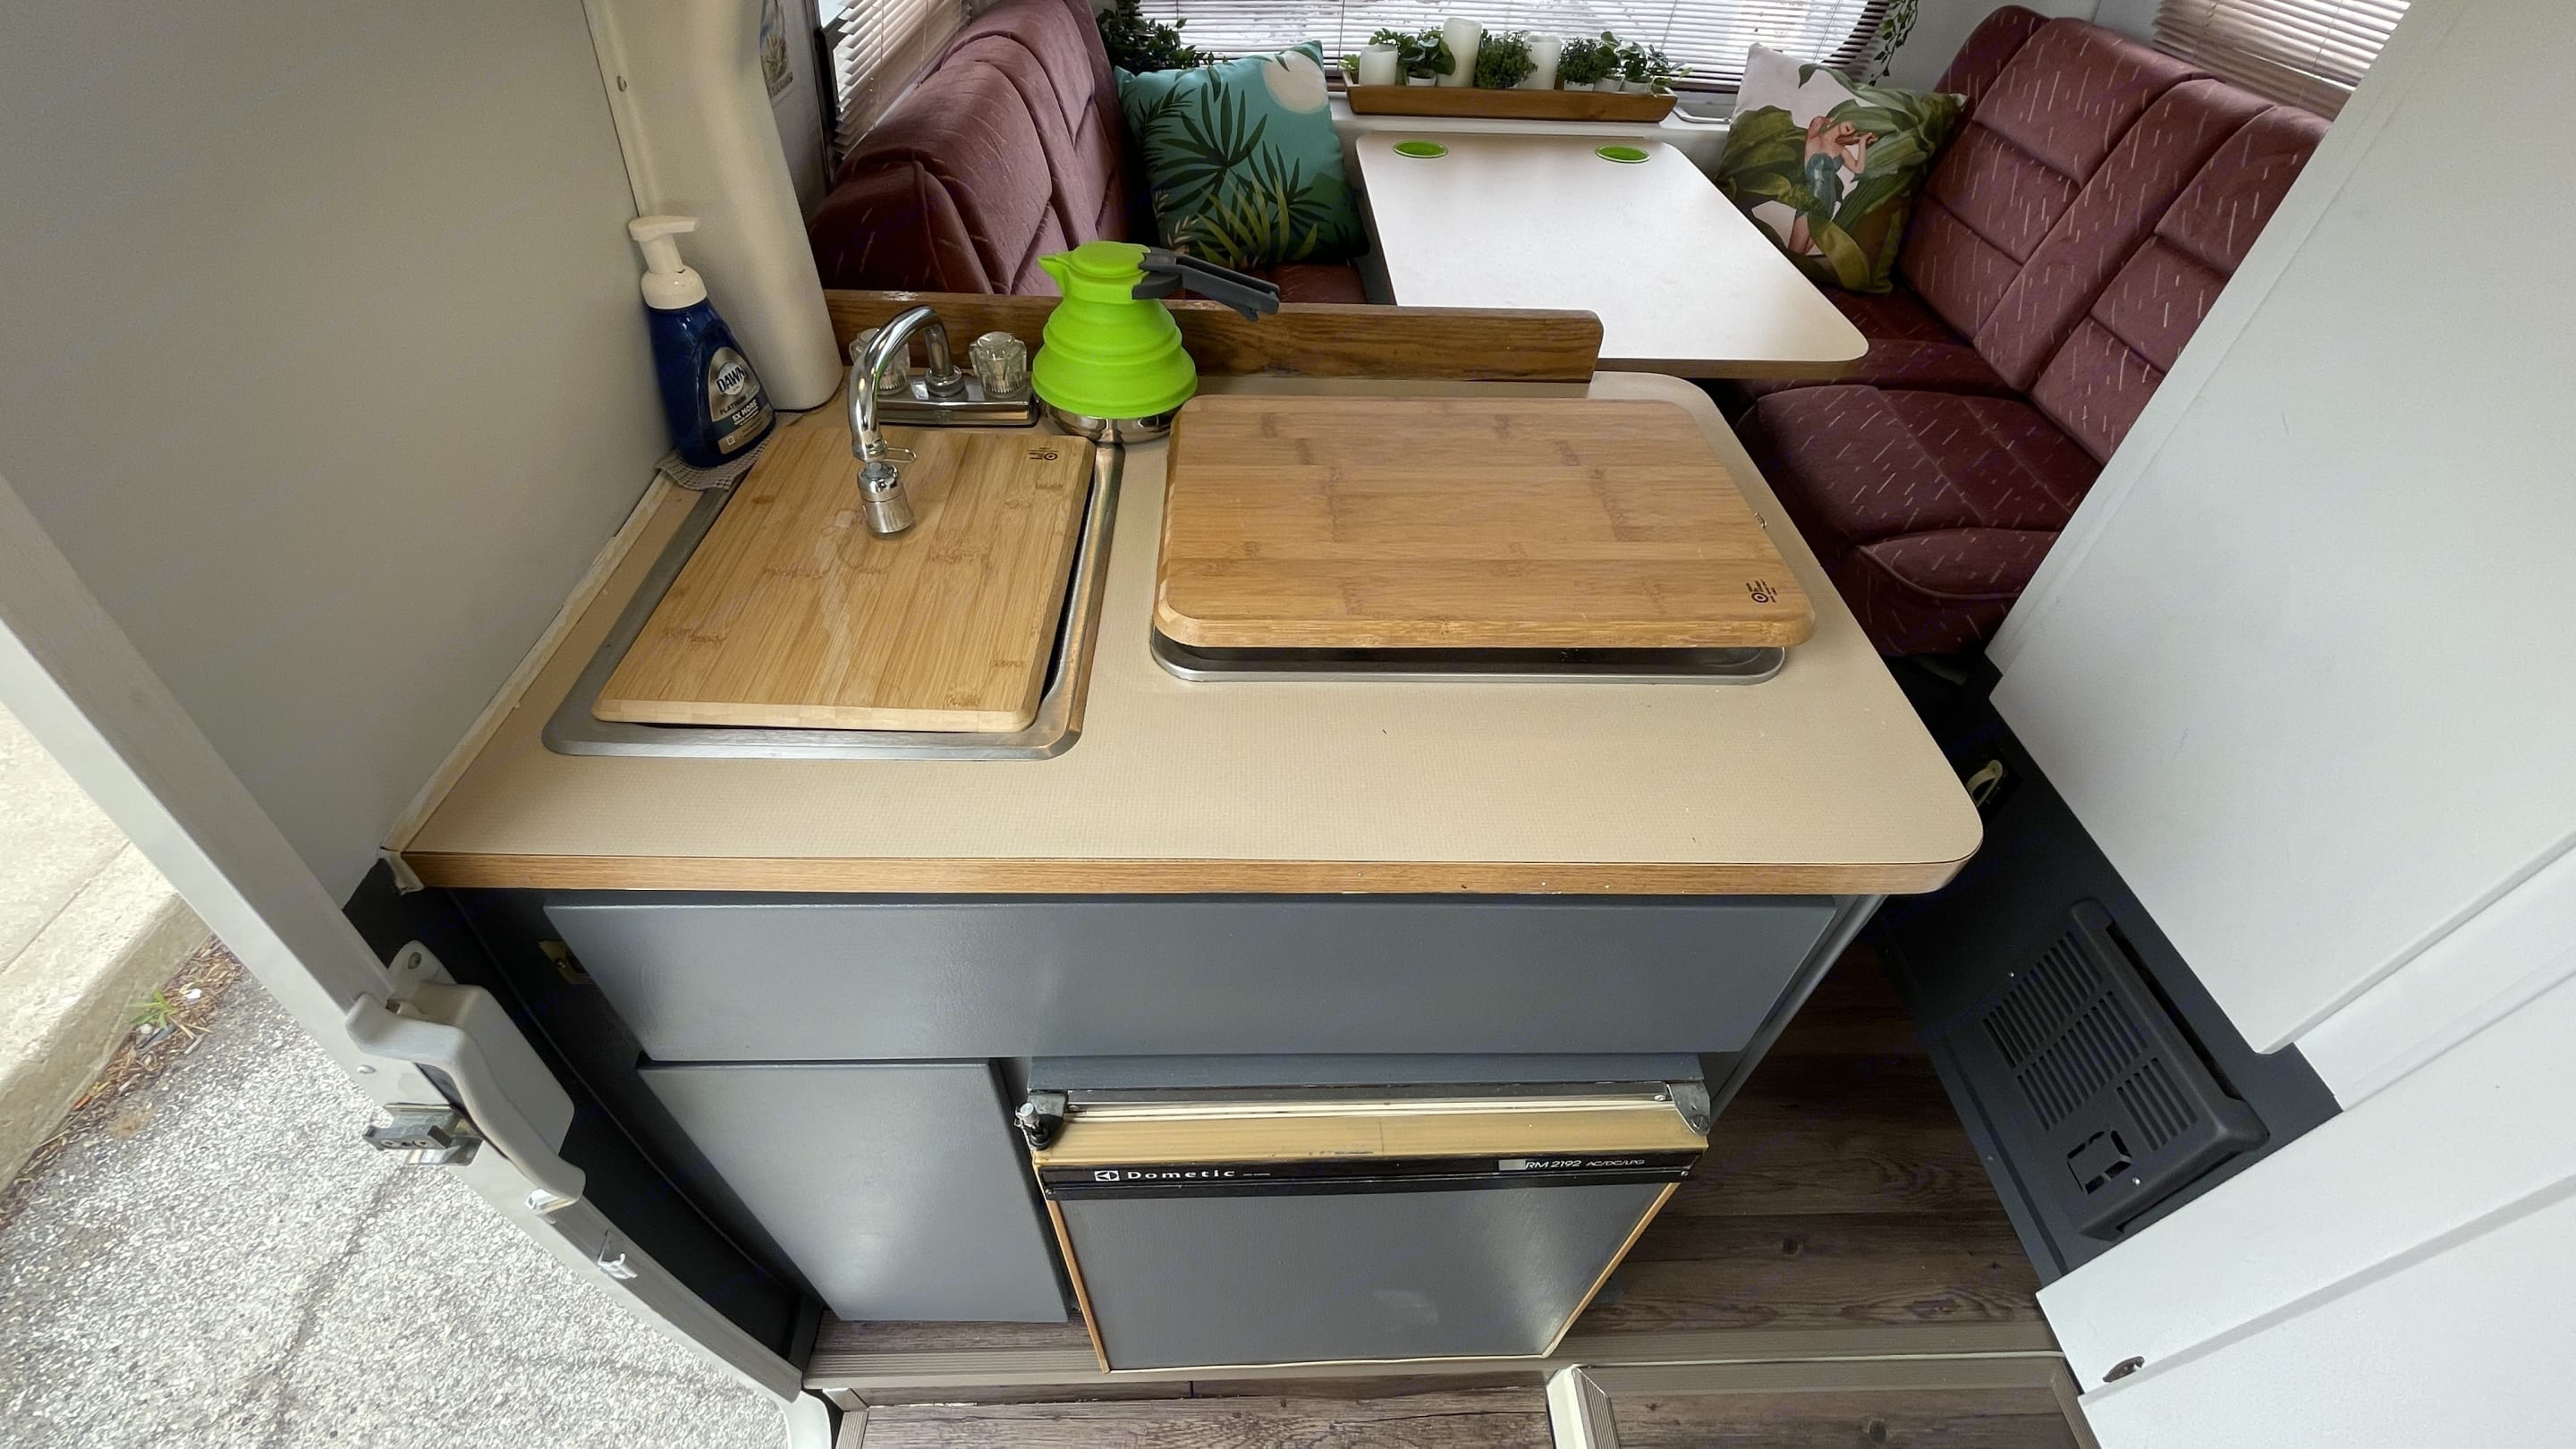 The kitchen may be small, but it works great!. Winnebago LeSharo 1988